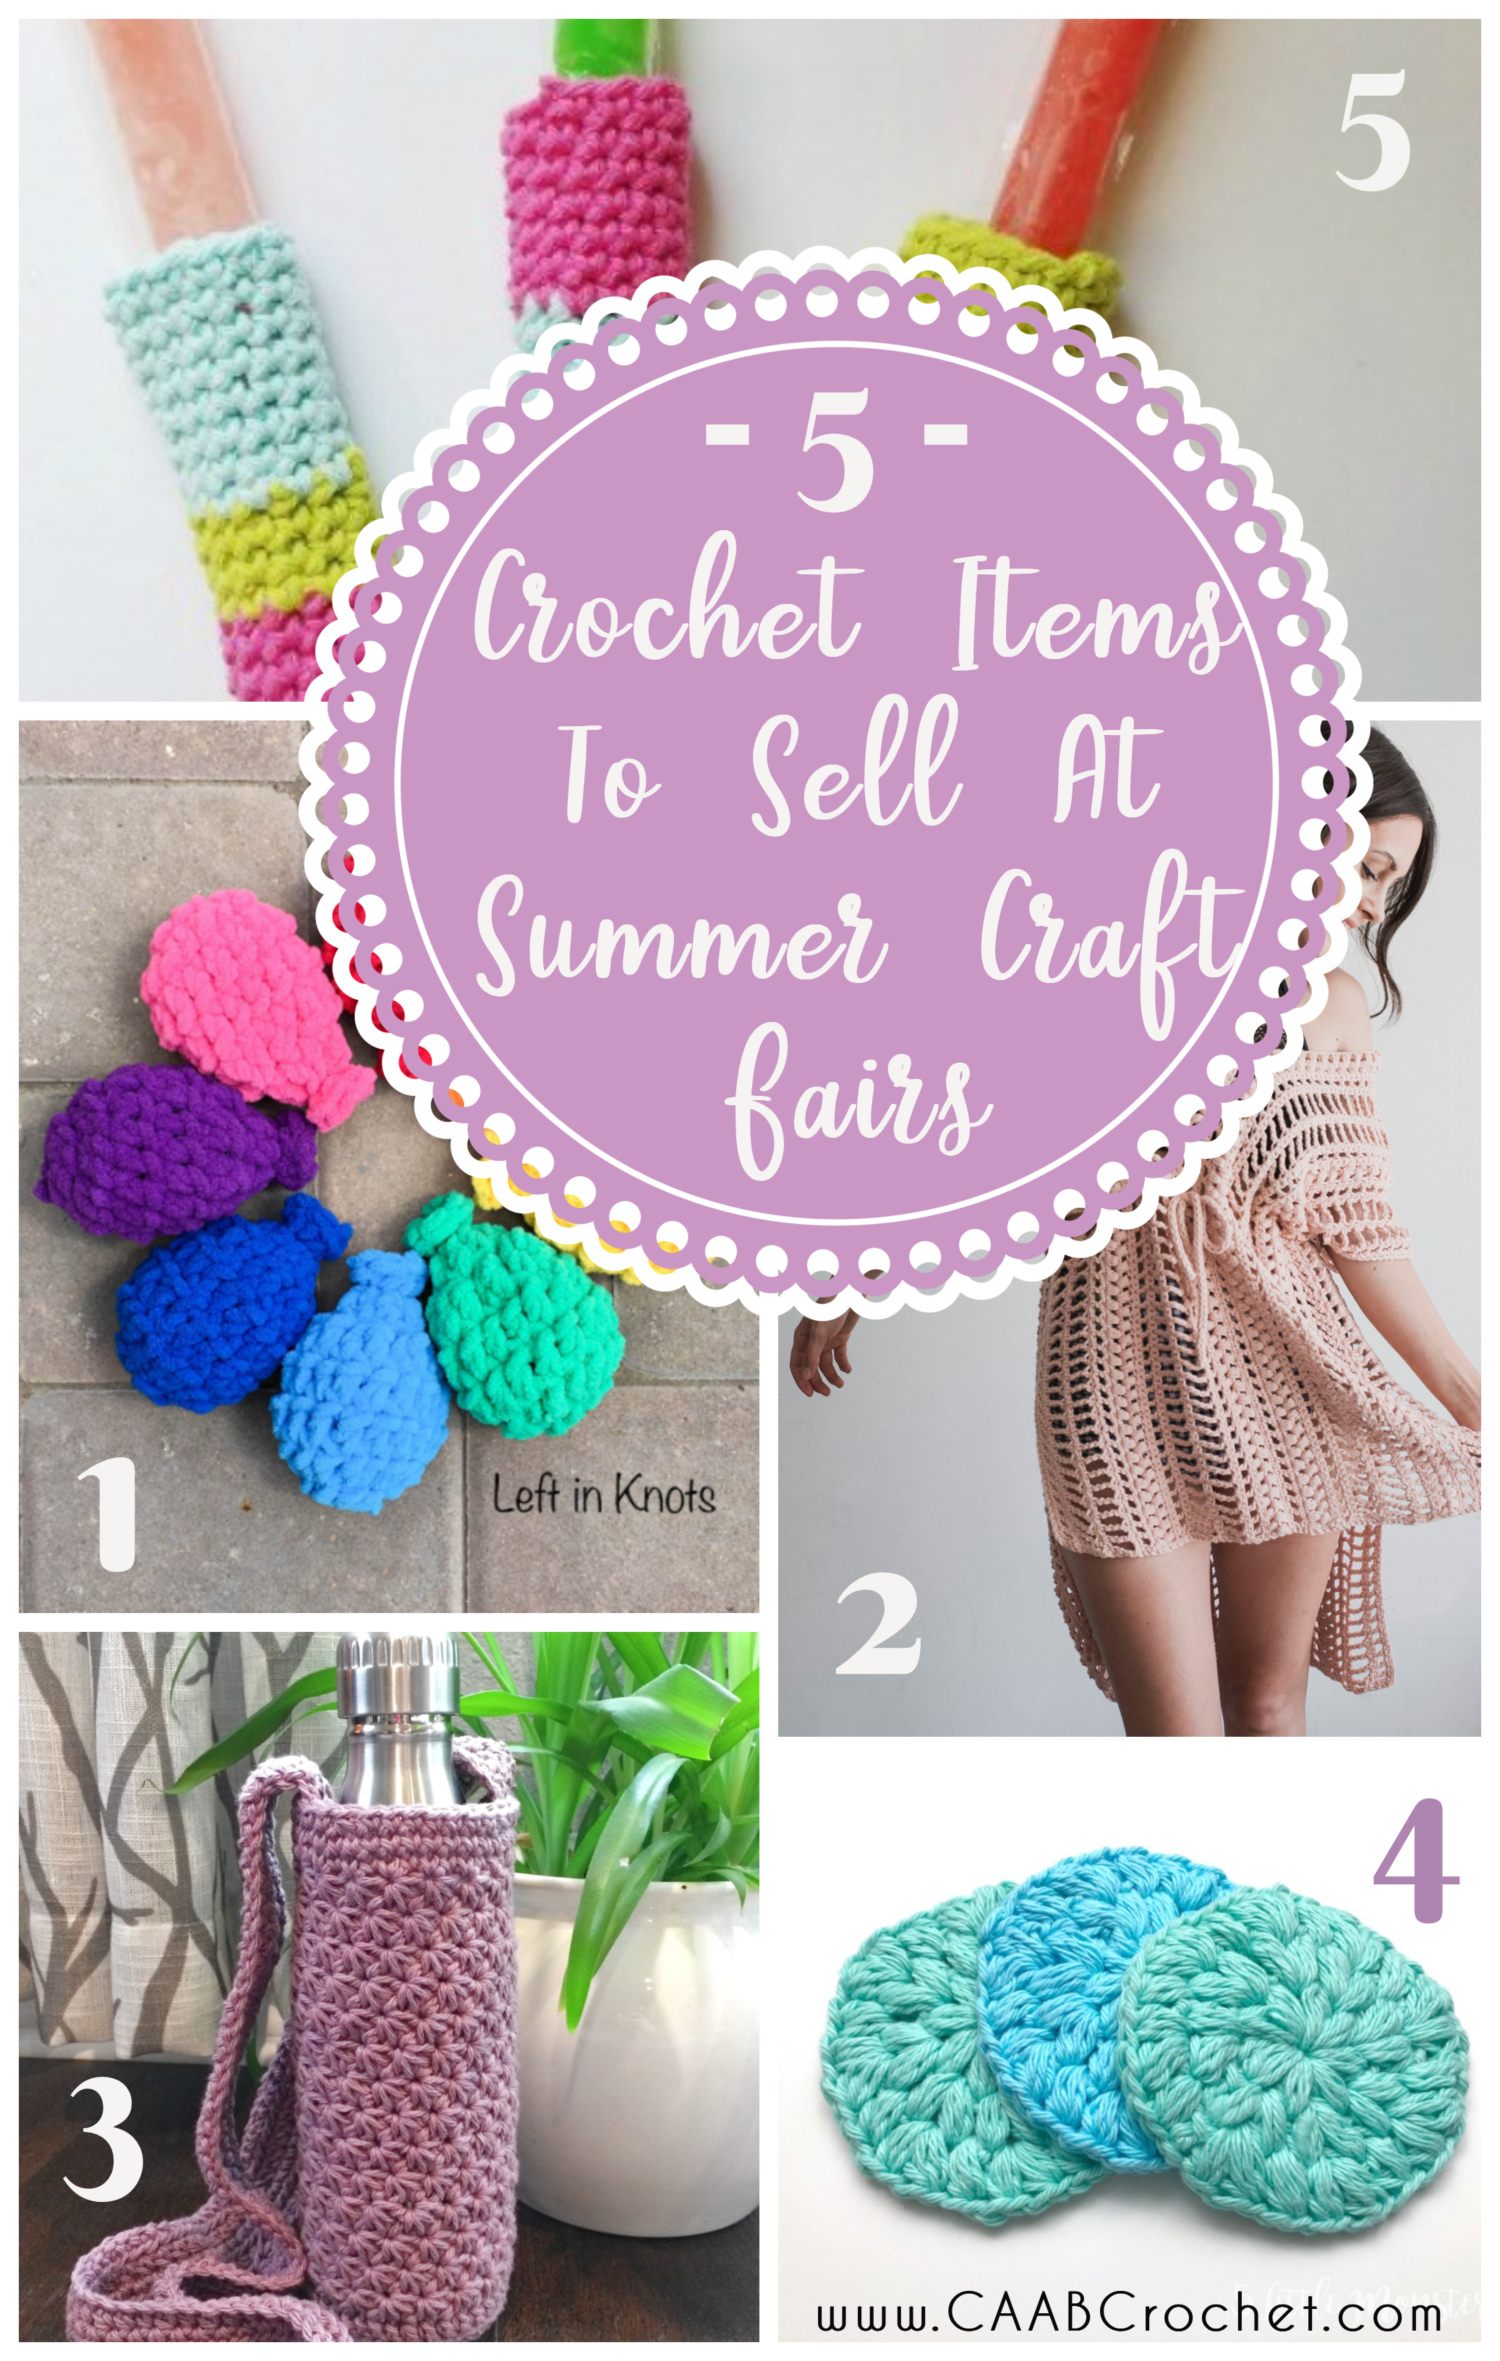 5 Crochet Ideas To Sell At Summer Craft Fairs Cute As A Button